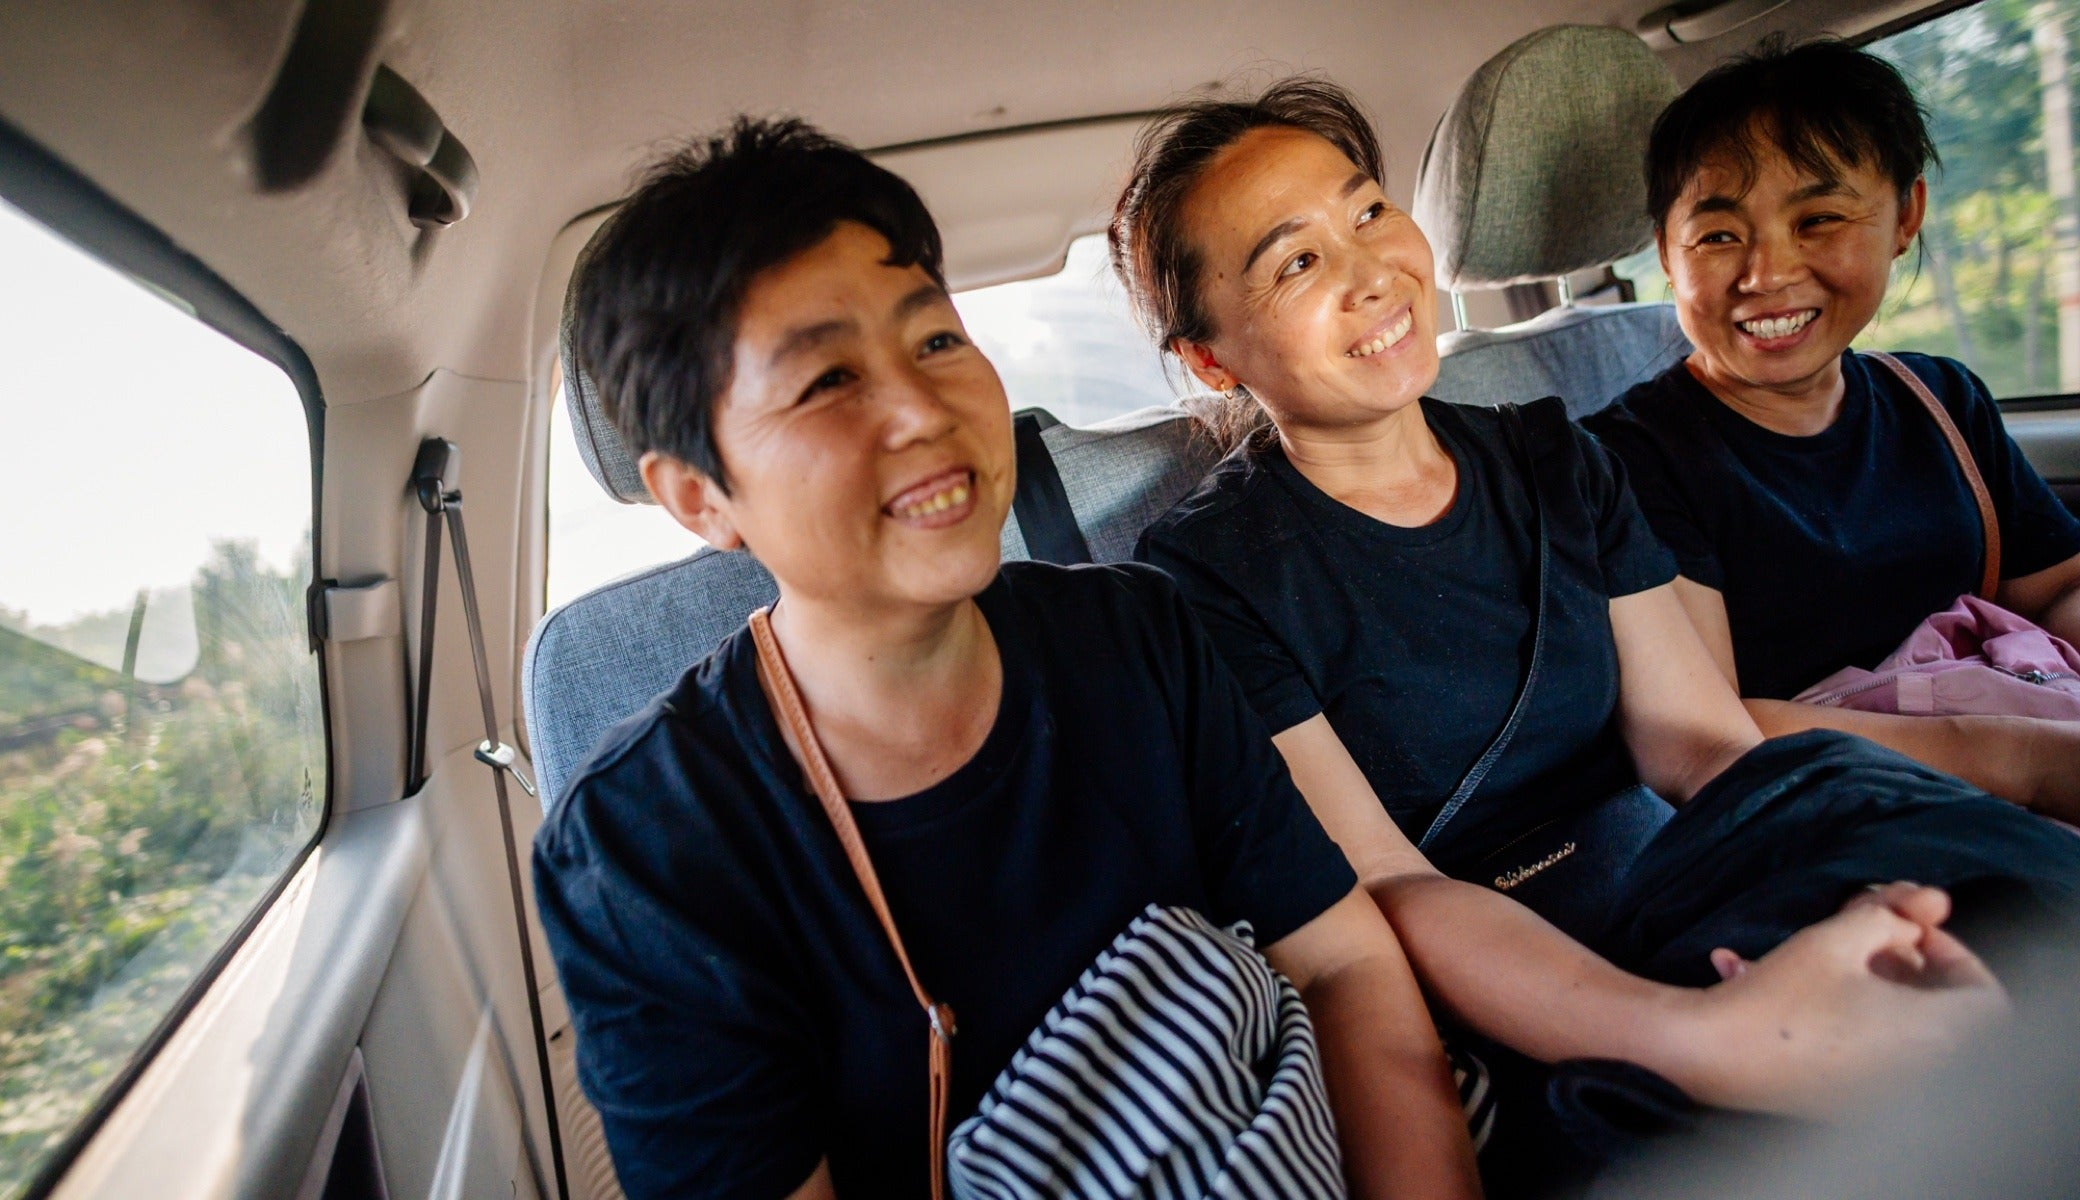 Employees get a ride home in a van as part of the ride share program initiated by owner George Huang. The program provides safe transportation and an opportunity to earn more income for the drivers